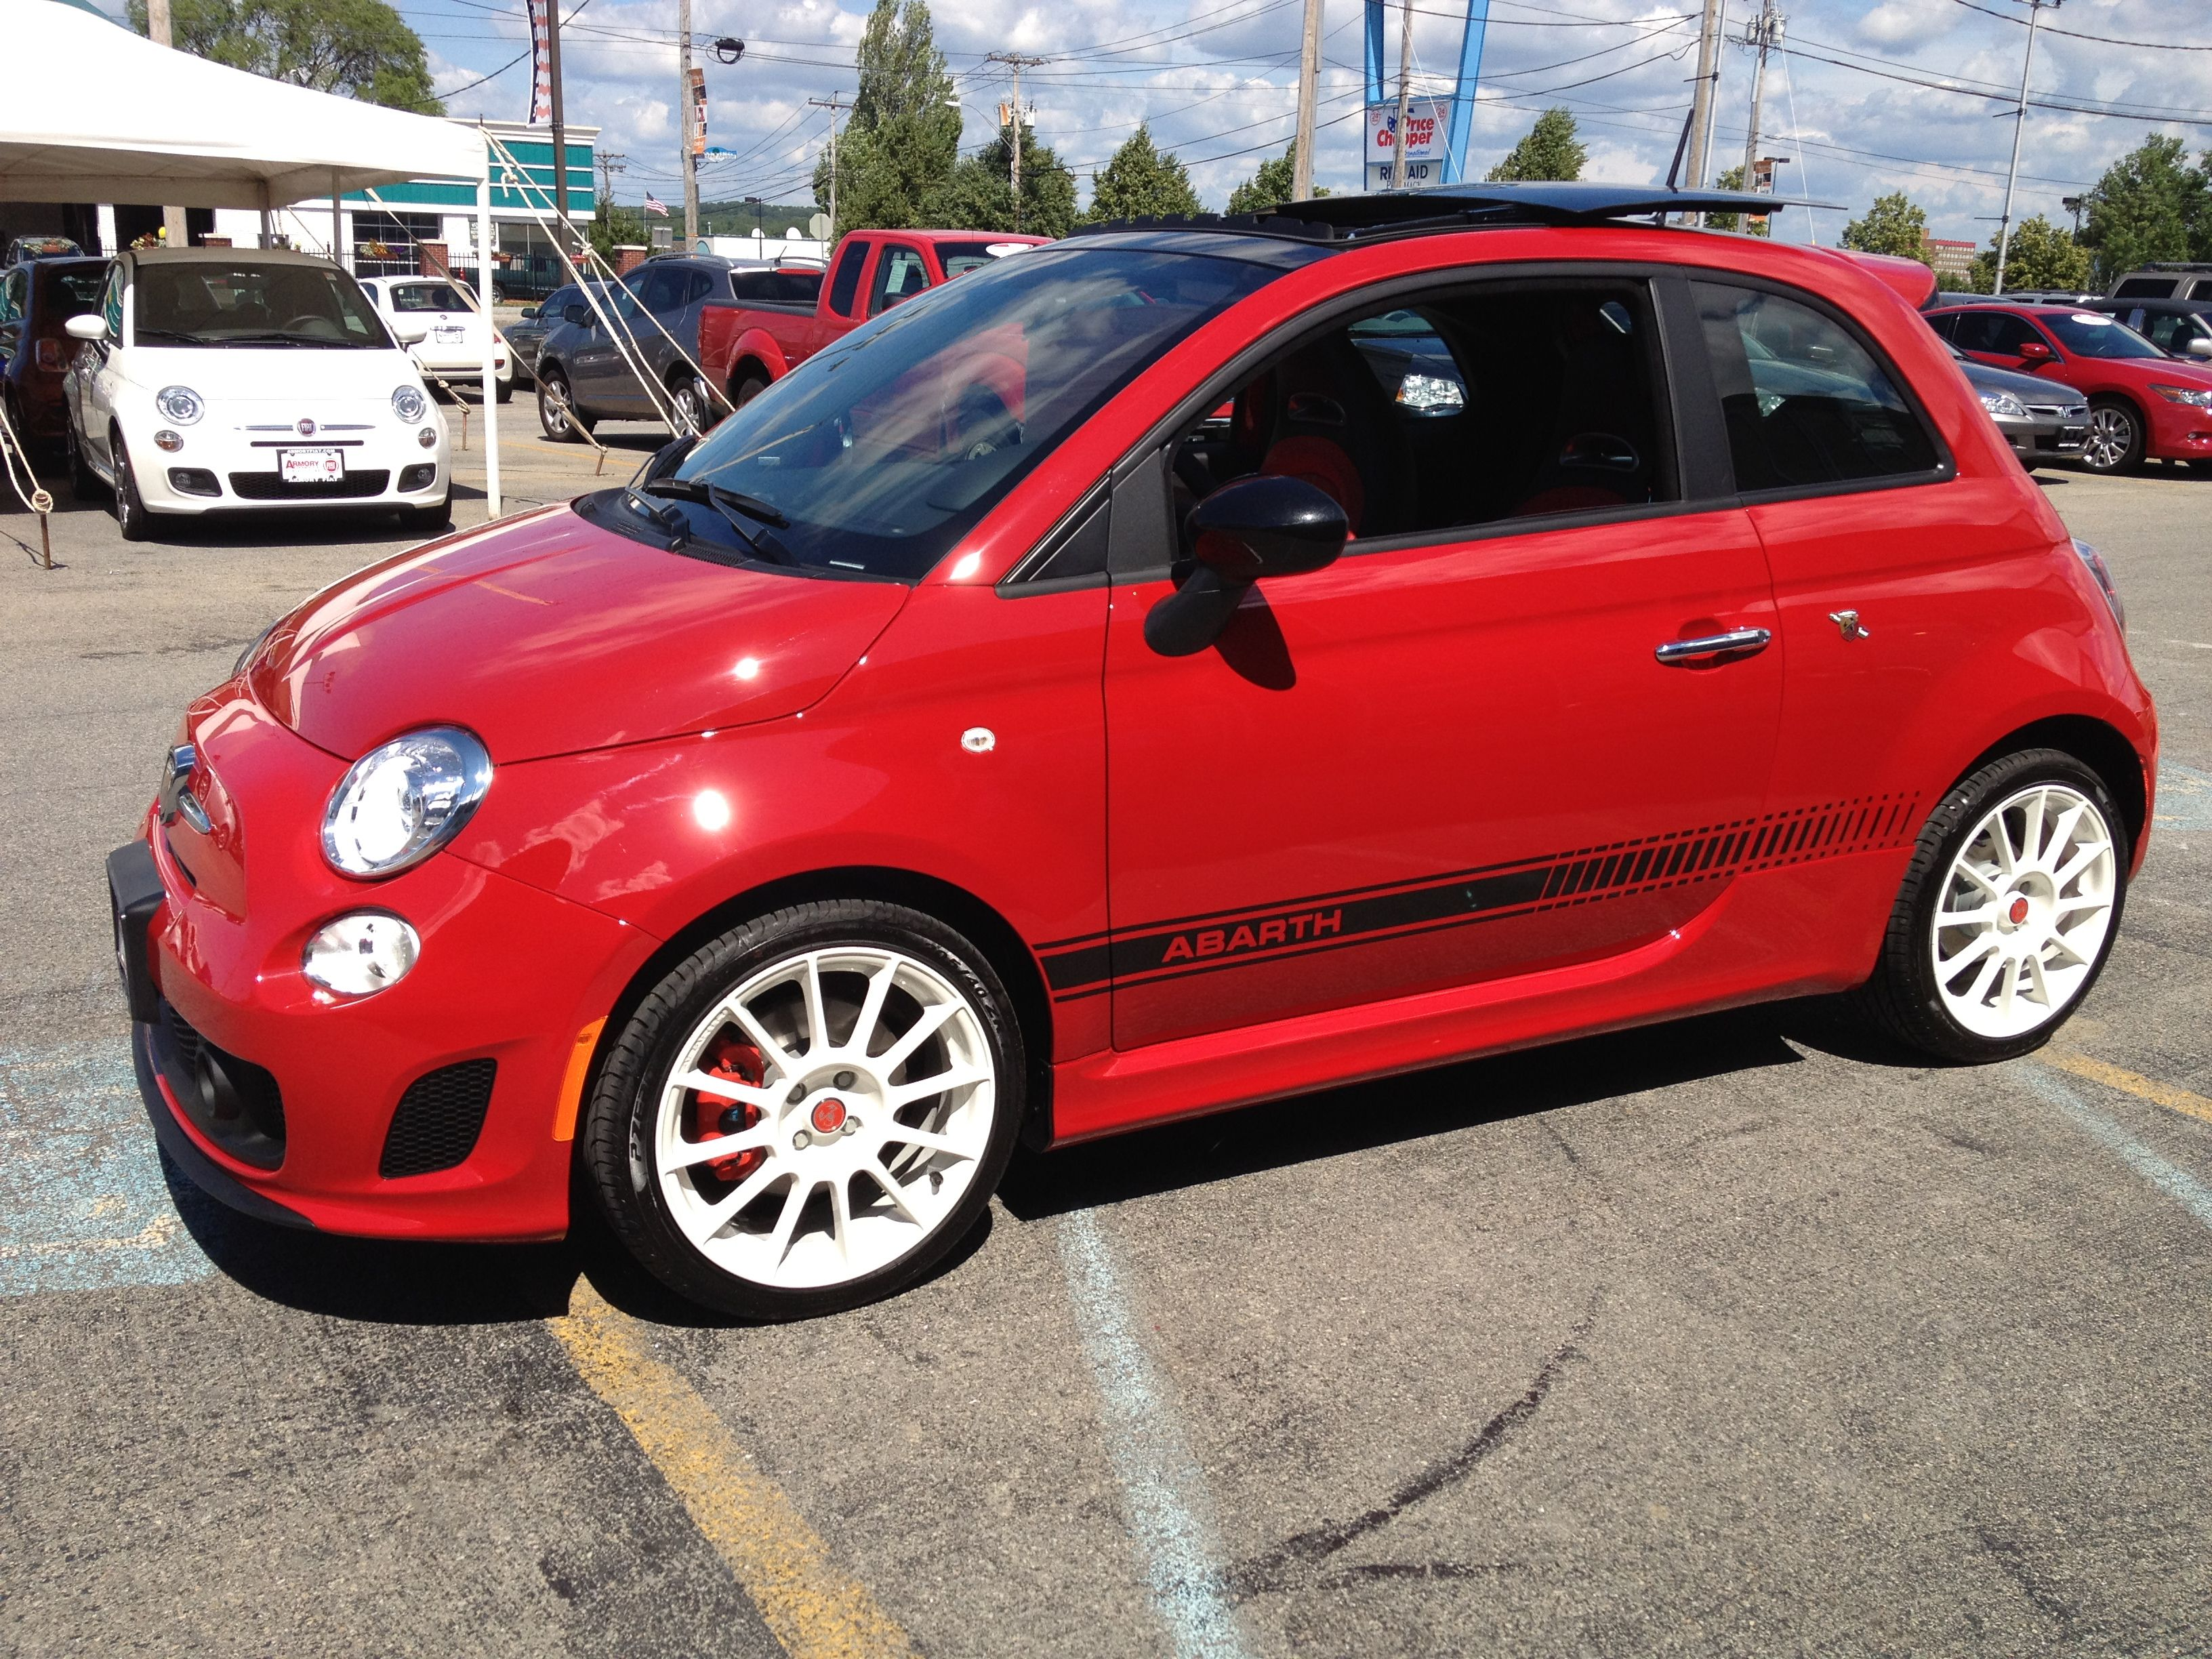 Fiat Abarth Red On White Rims With Images Fiat Abarth White